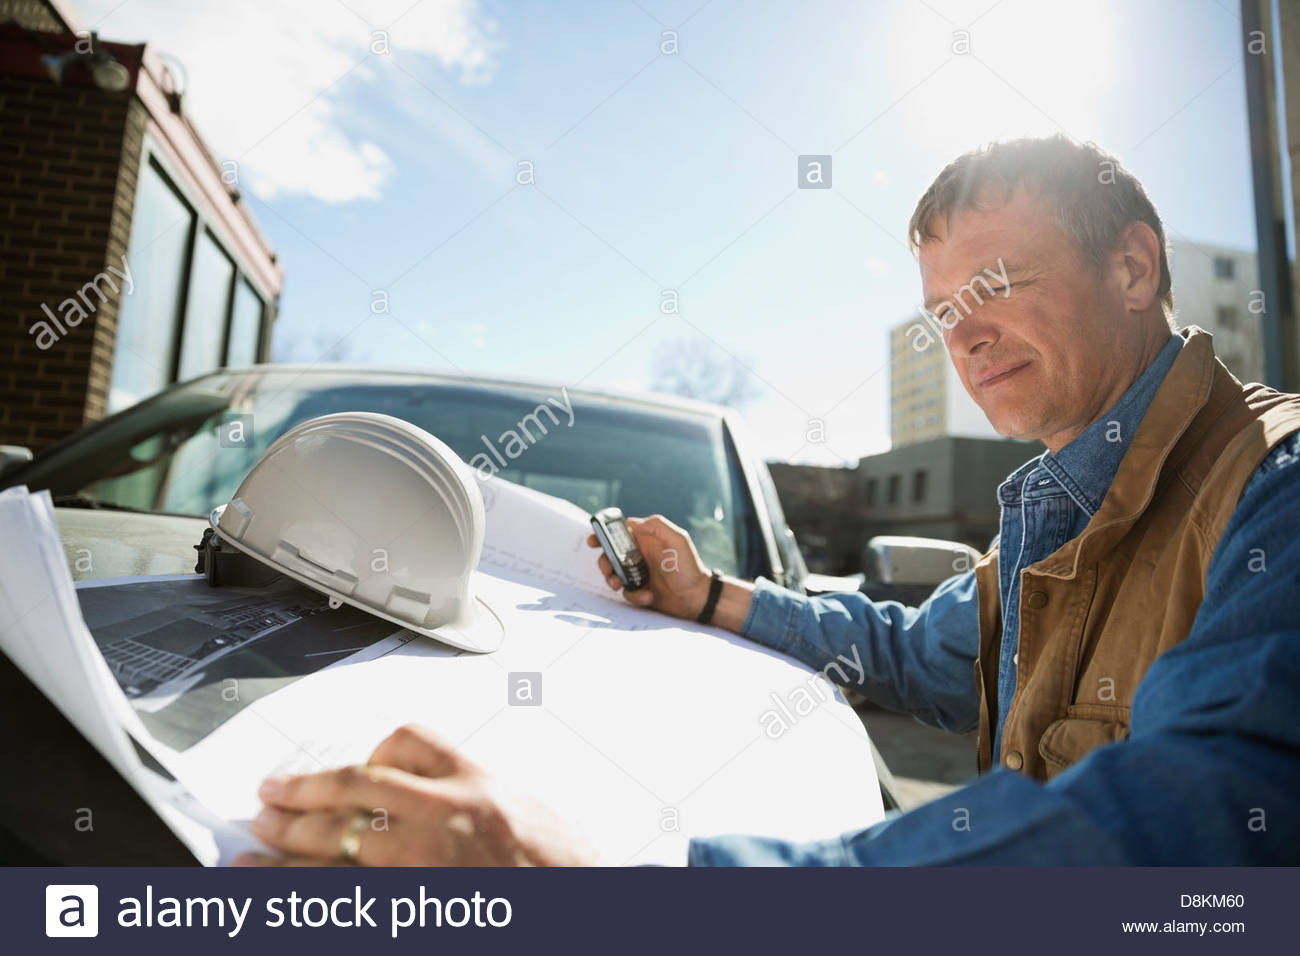 Foreman with mobile phone checking blueprint on truck hood - Stock Image